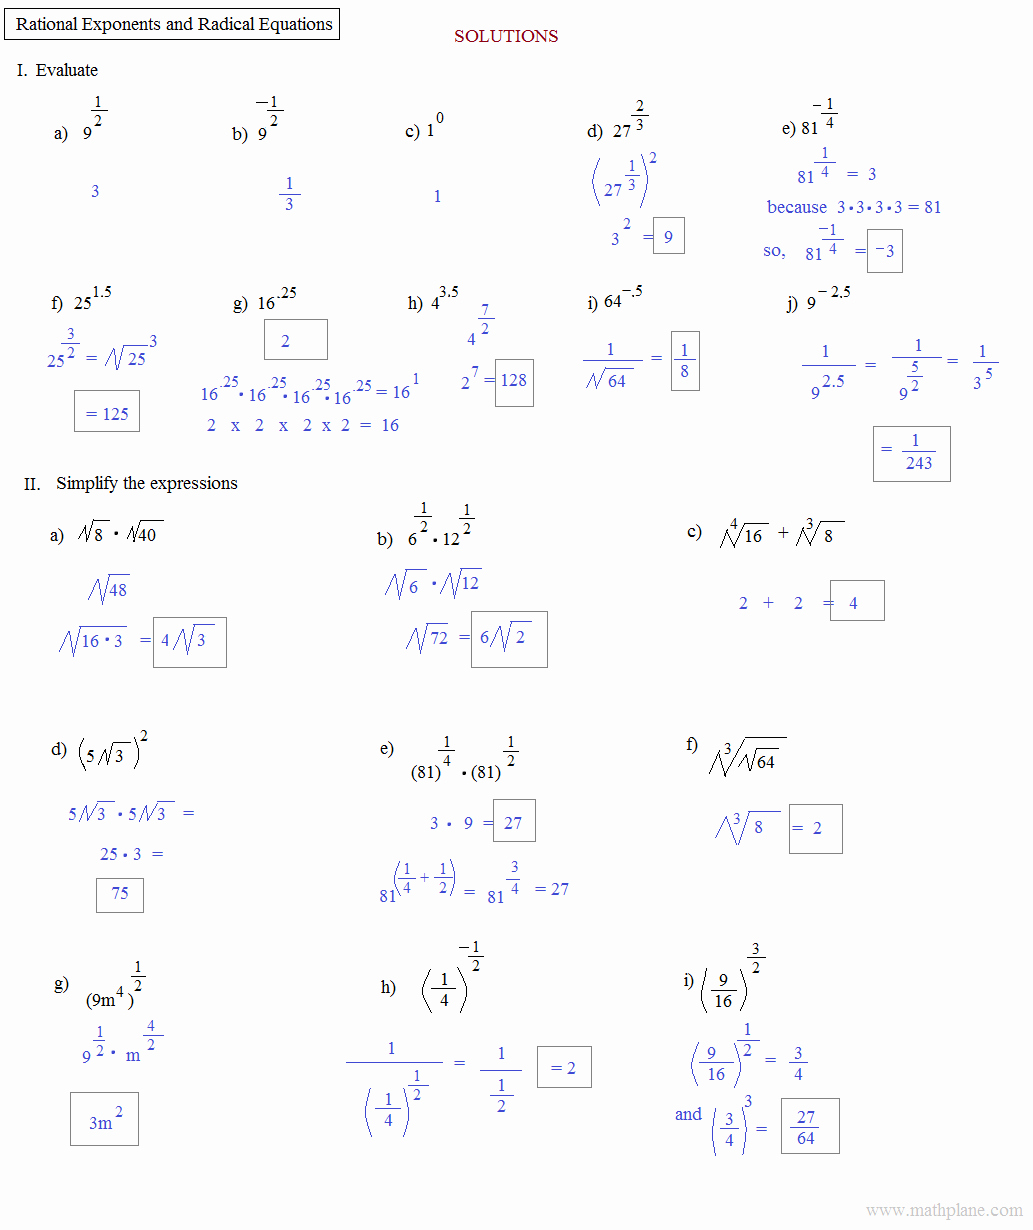 Rational Exponents and Radicals Worksheet Lovely solving Rational Exponent Equations Worksheet Answers